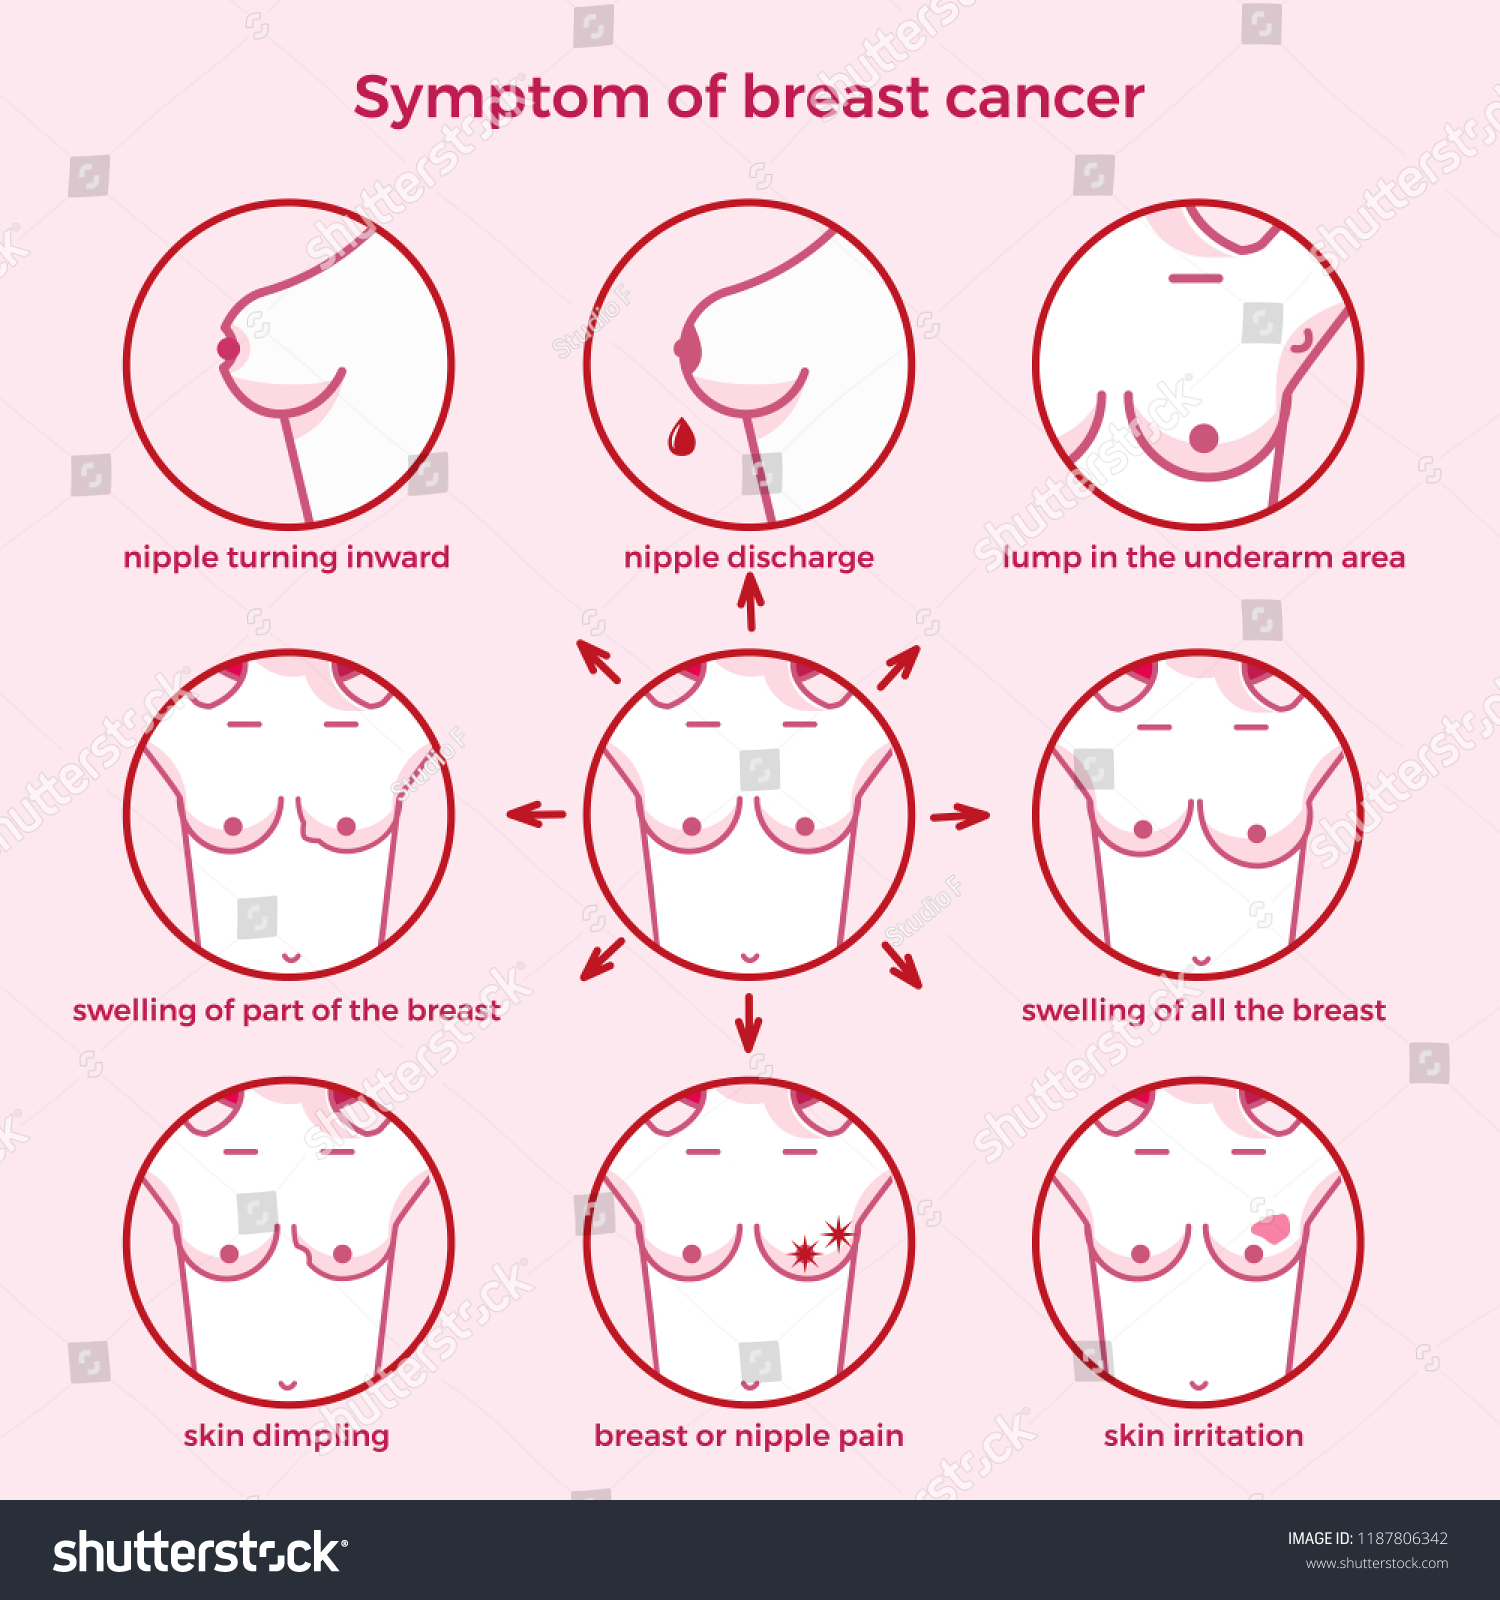 Symptoms Breast Cancer Medicine Pathology Anatomy Stock Vector ...